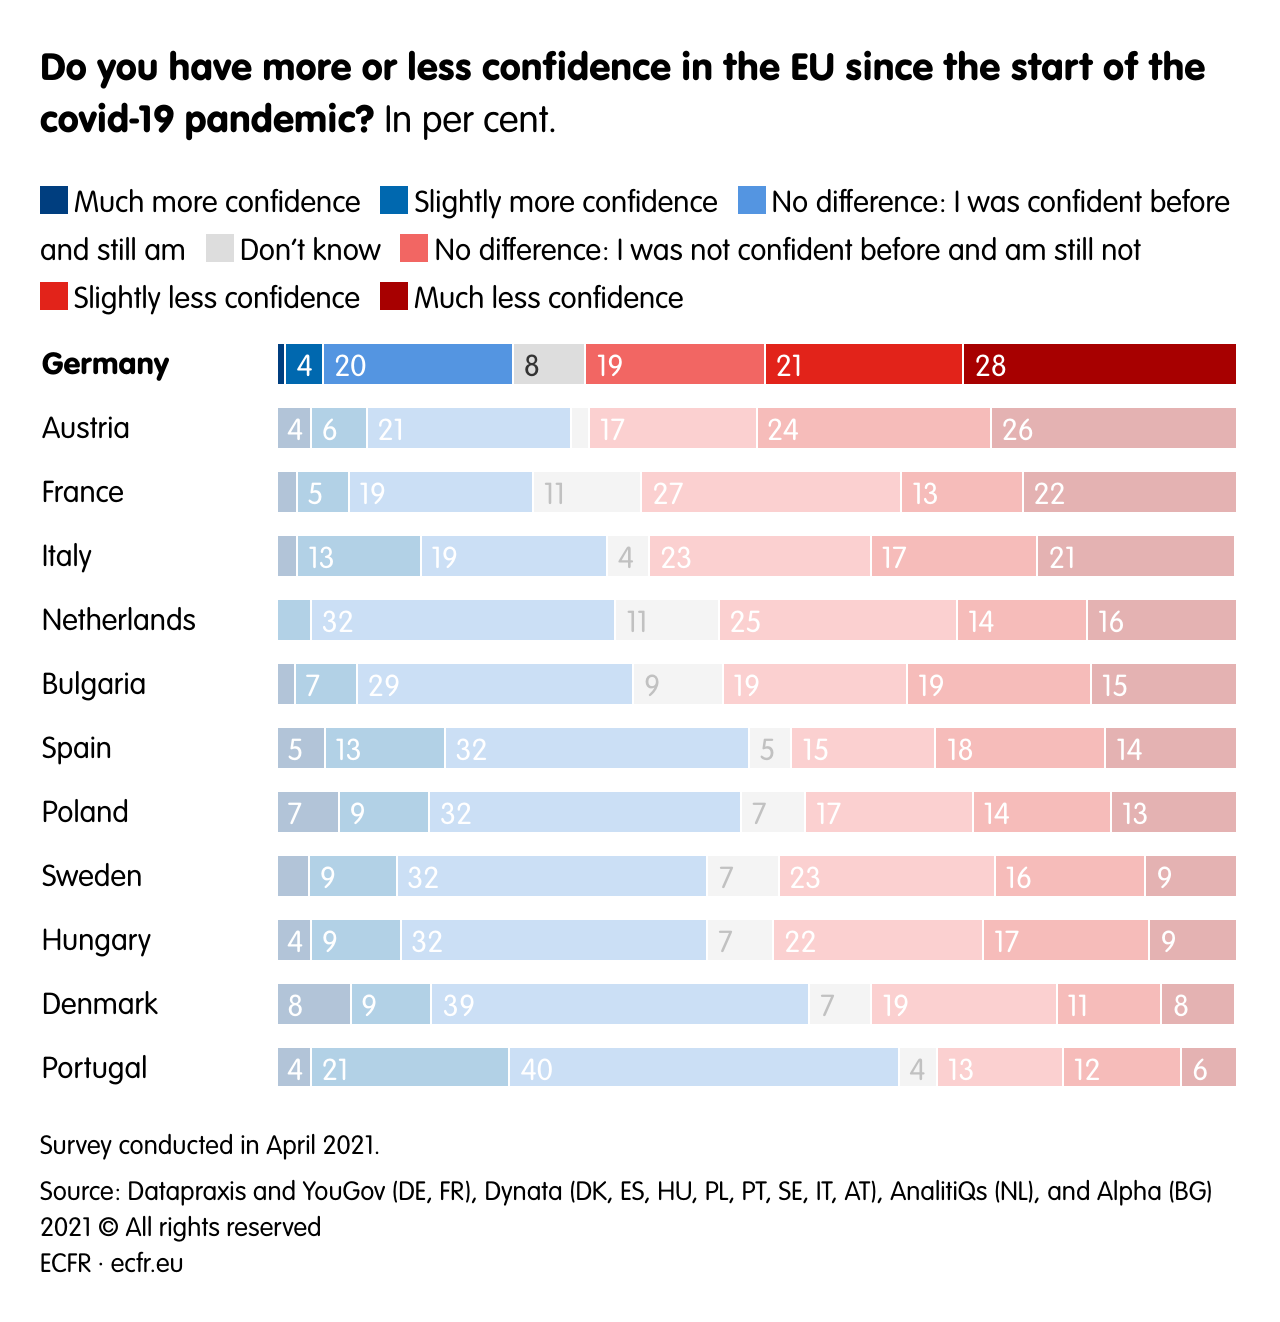 Do you have more or less confidence in the EU since the start of the covid-19 pandemic?